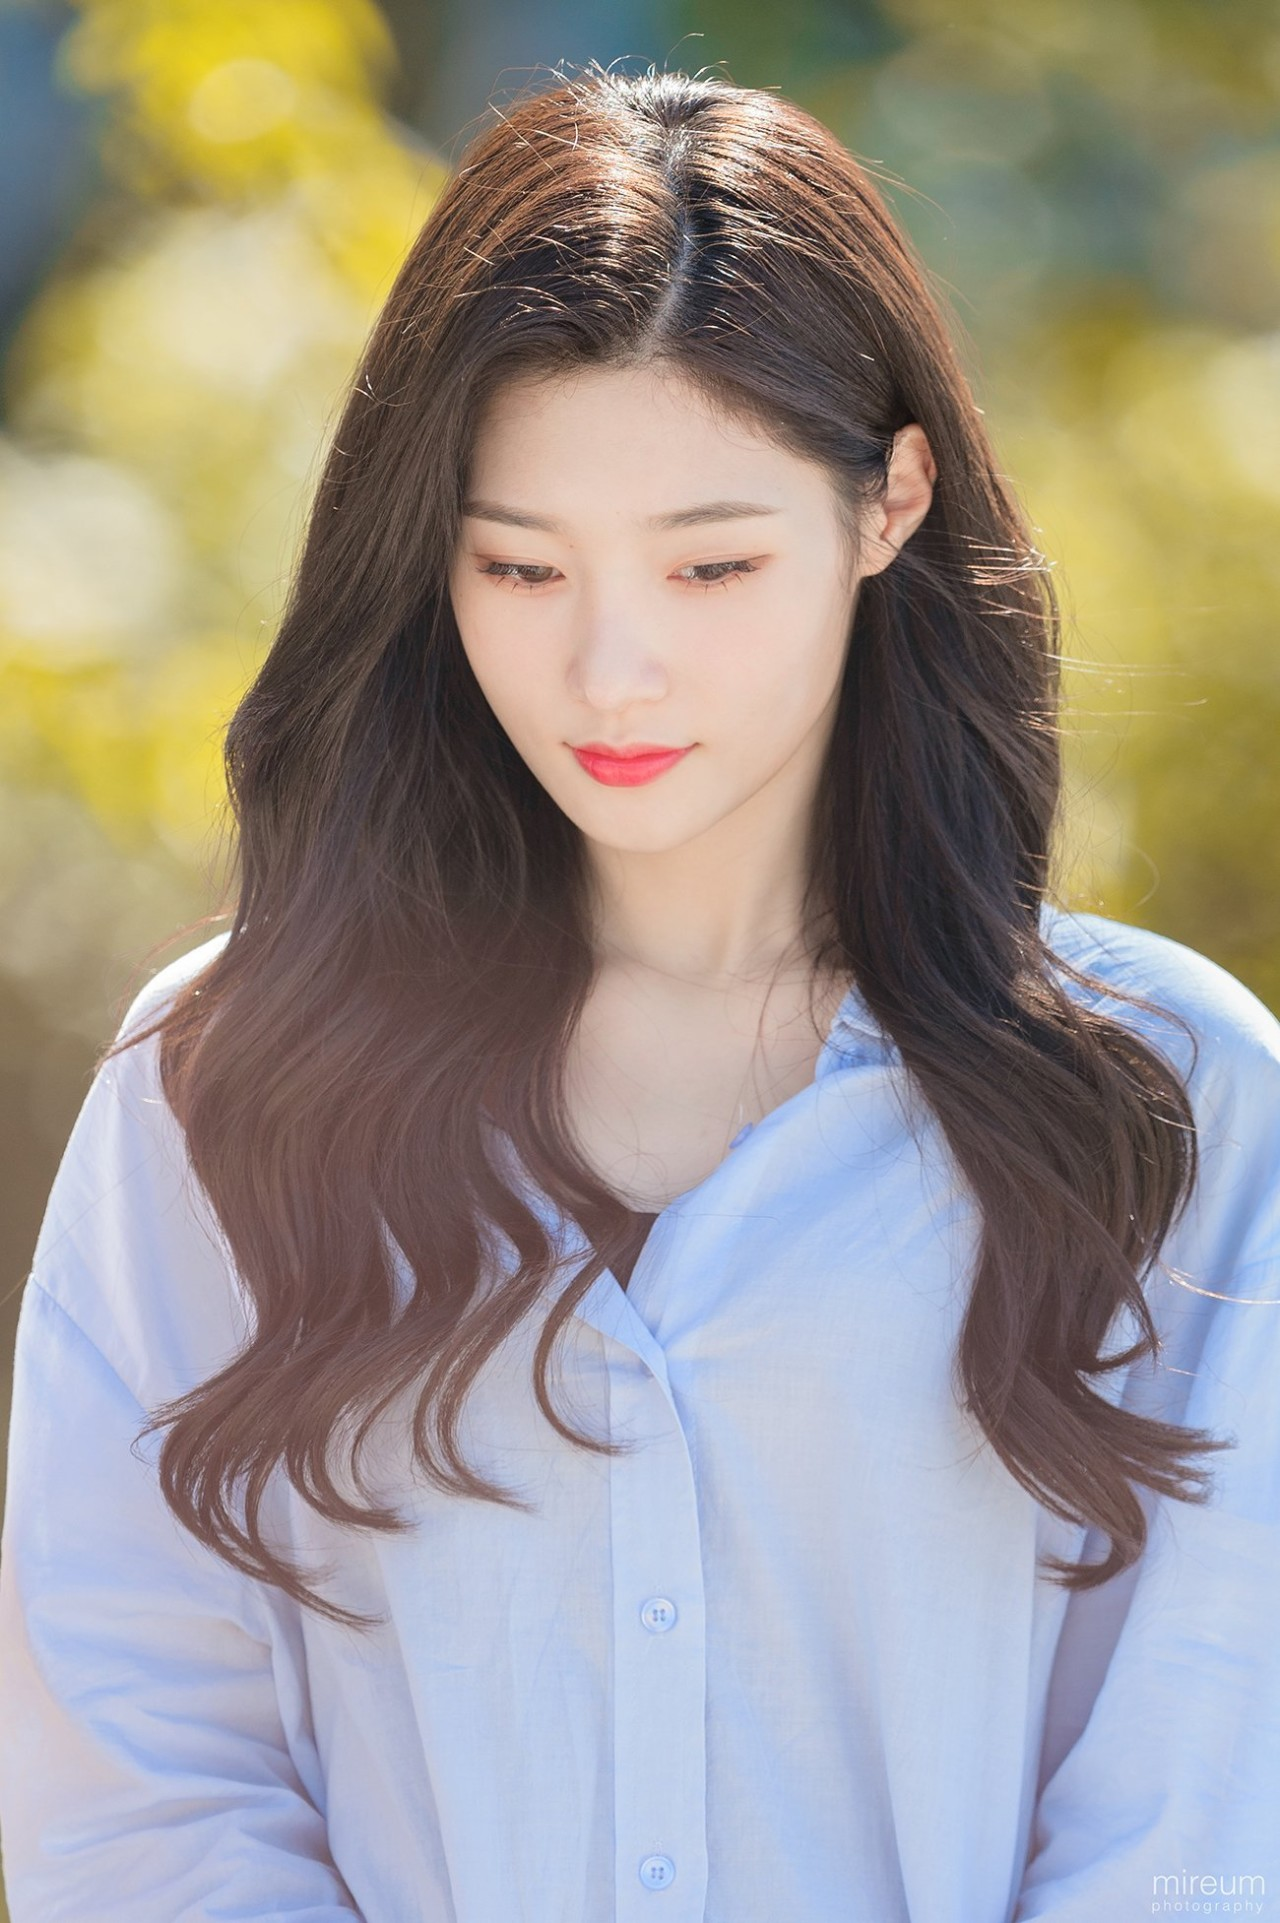 dia jung chaeyeon faint cold 1